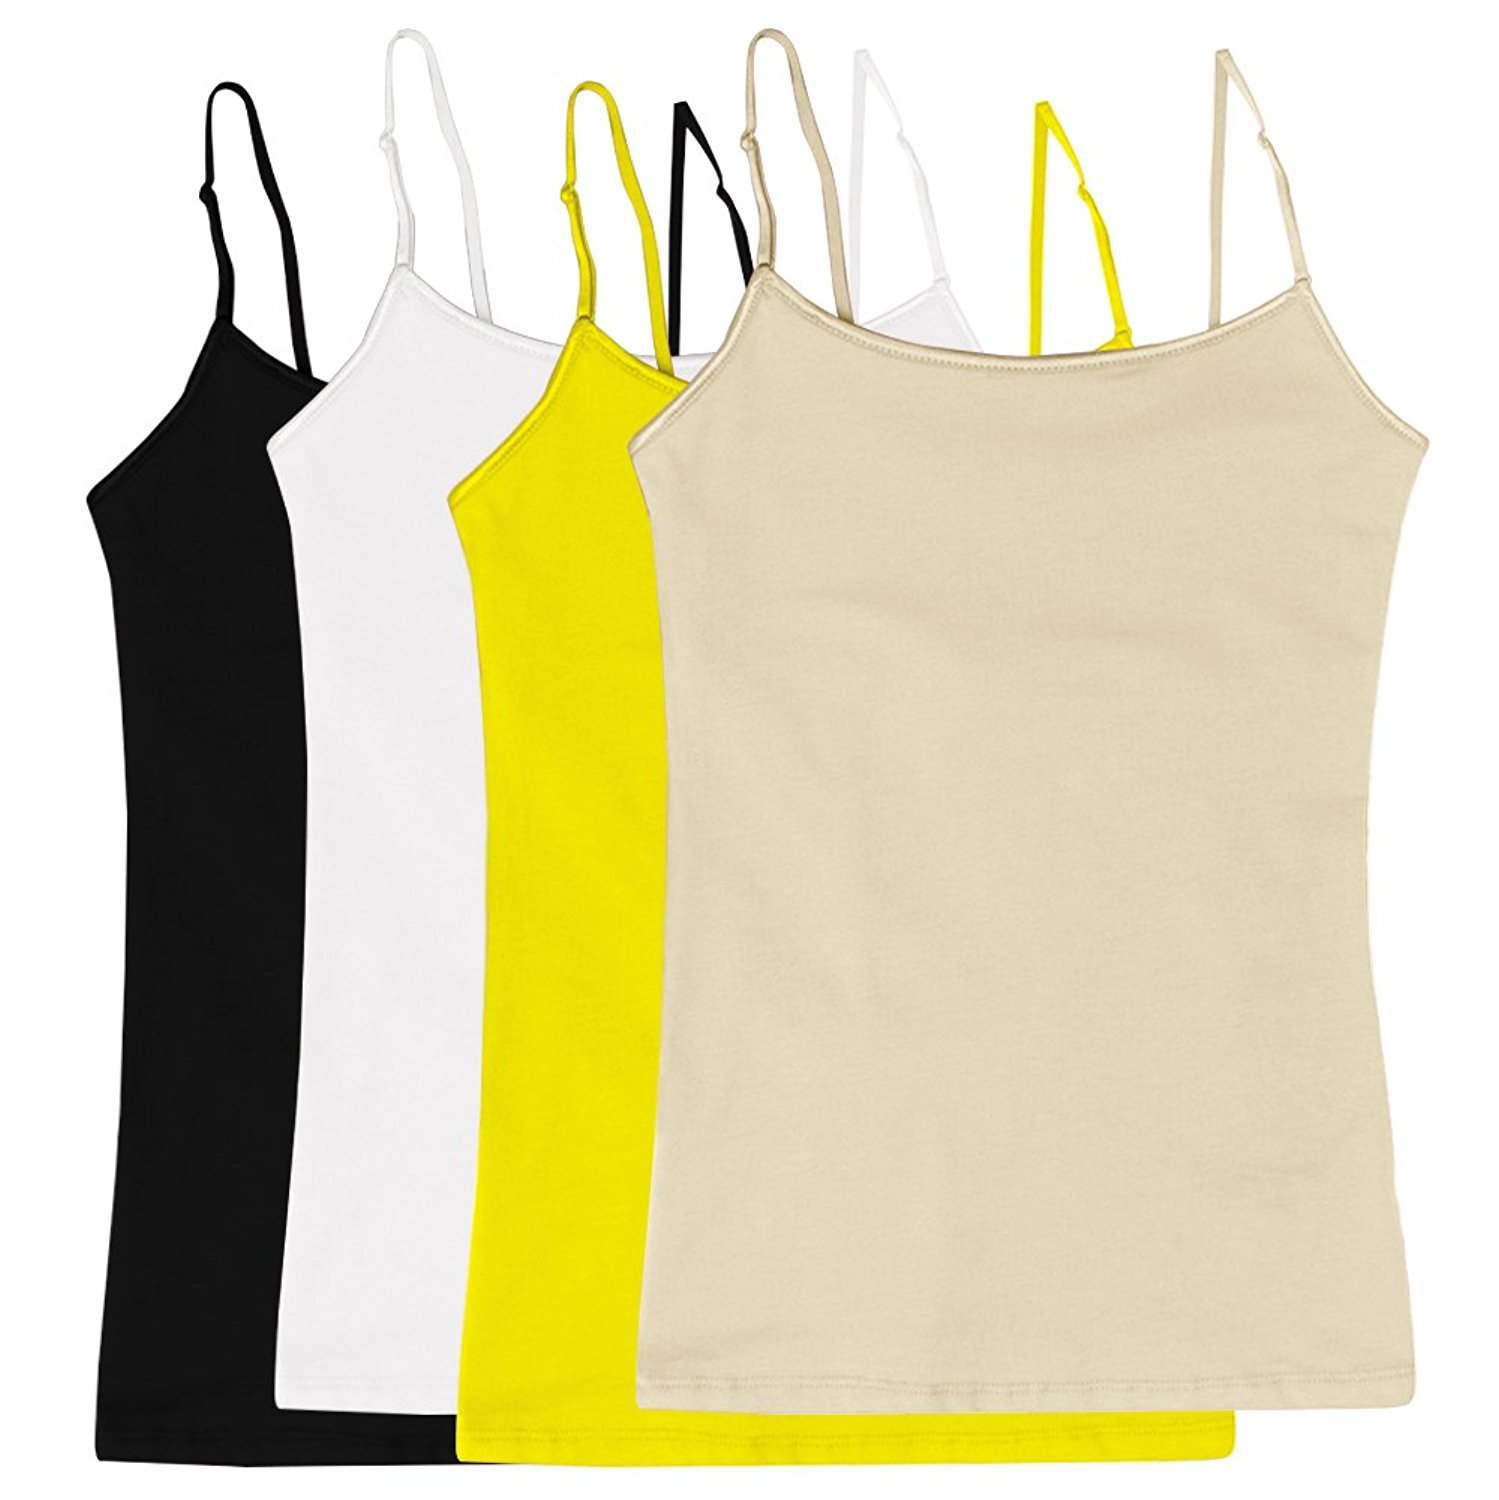 04909209f8 Get Quotations · Women s Camisole Built-in Shelf Bra Adjustable Spaghetti Straps  Tank Top Pack 4 Pk Yellow